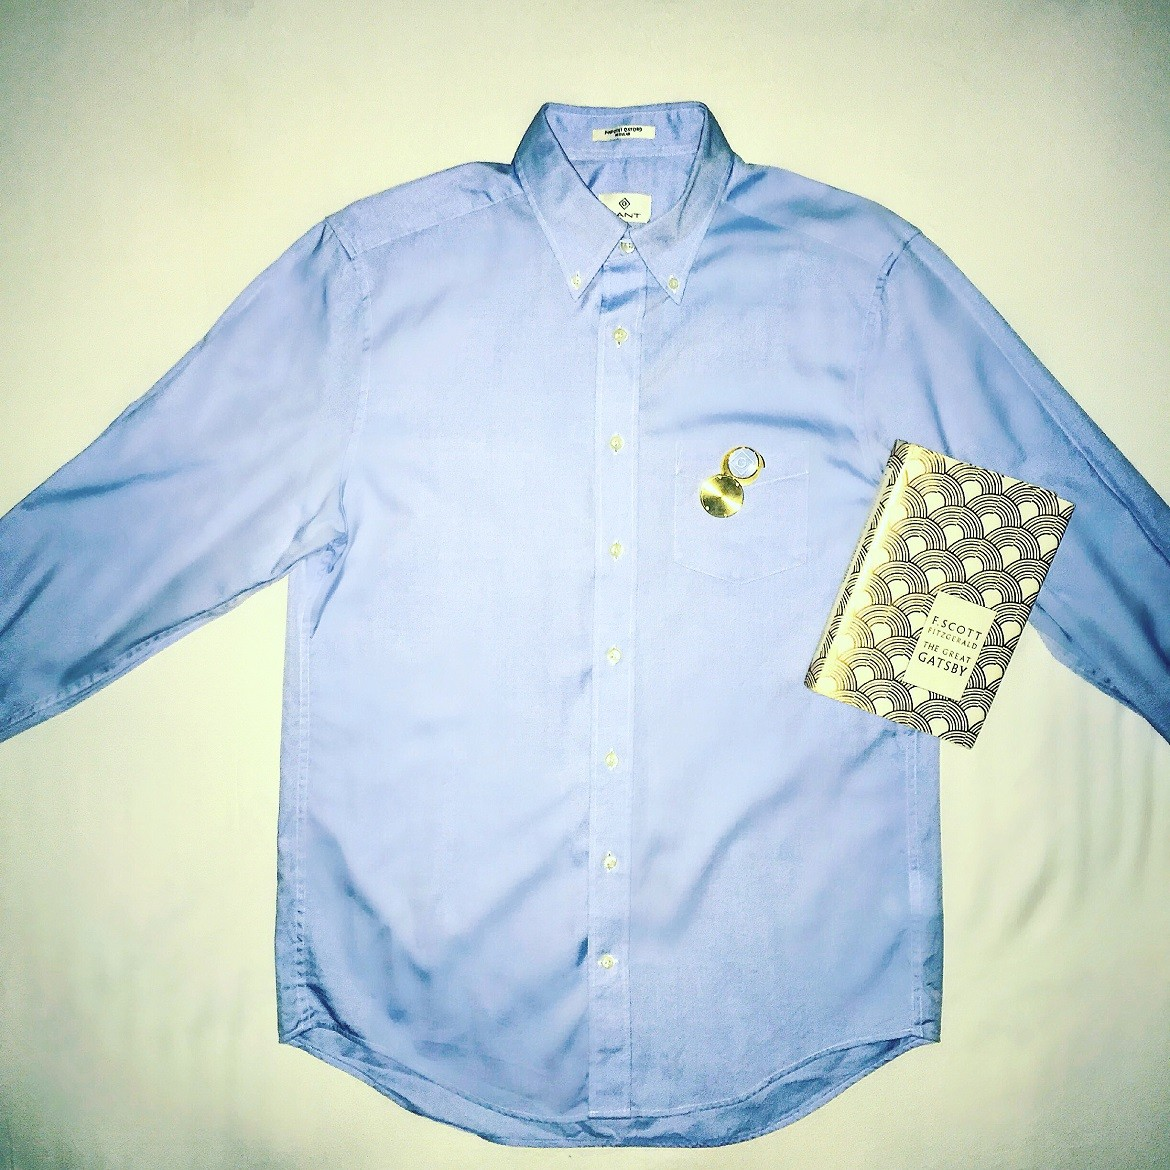 A light blue nu-preppy shirt for the modern urban Gatsby.